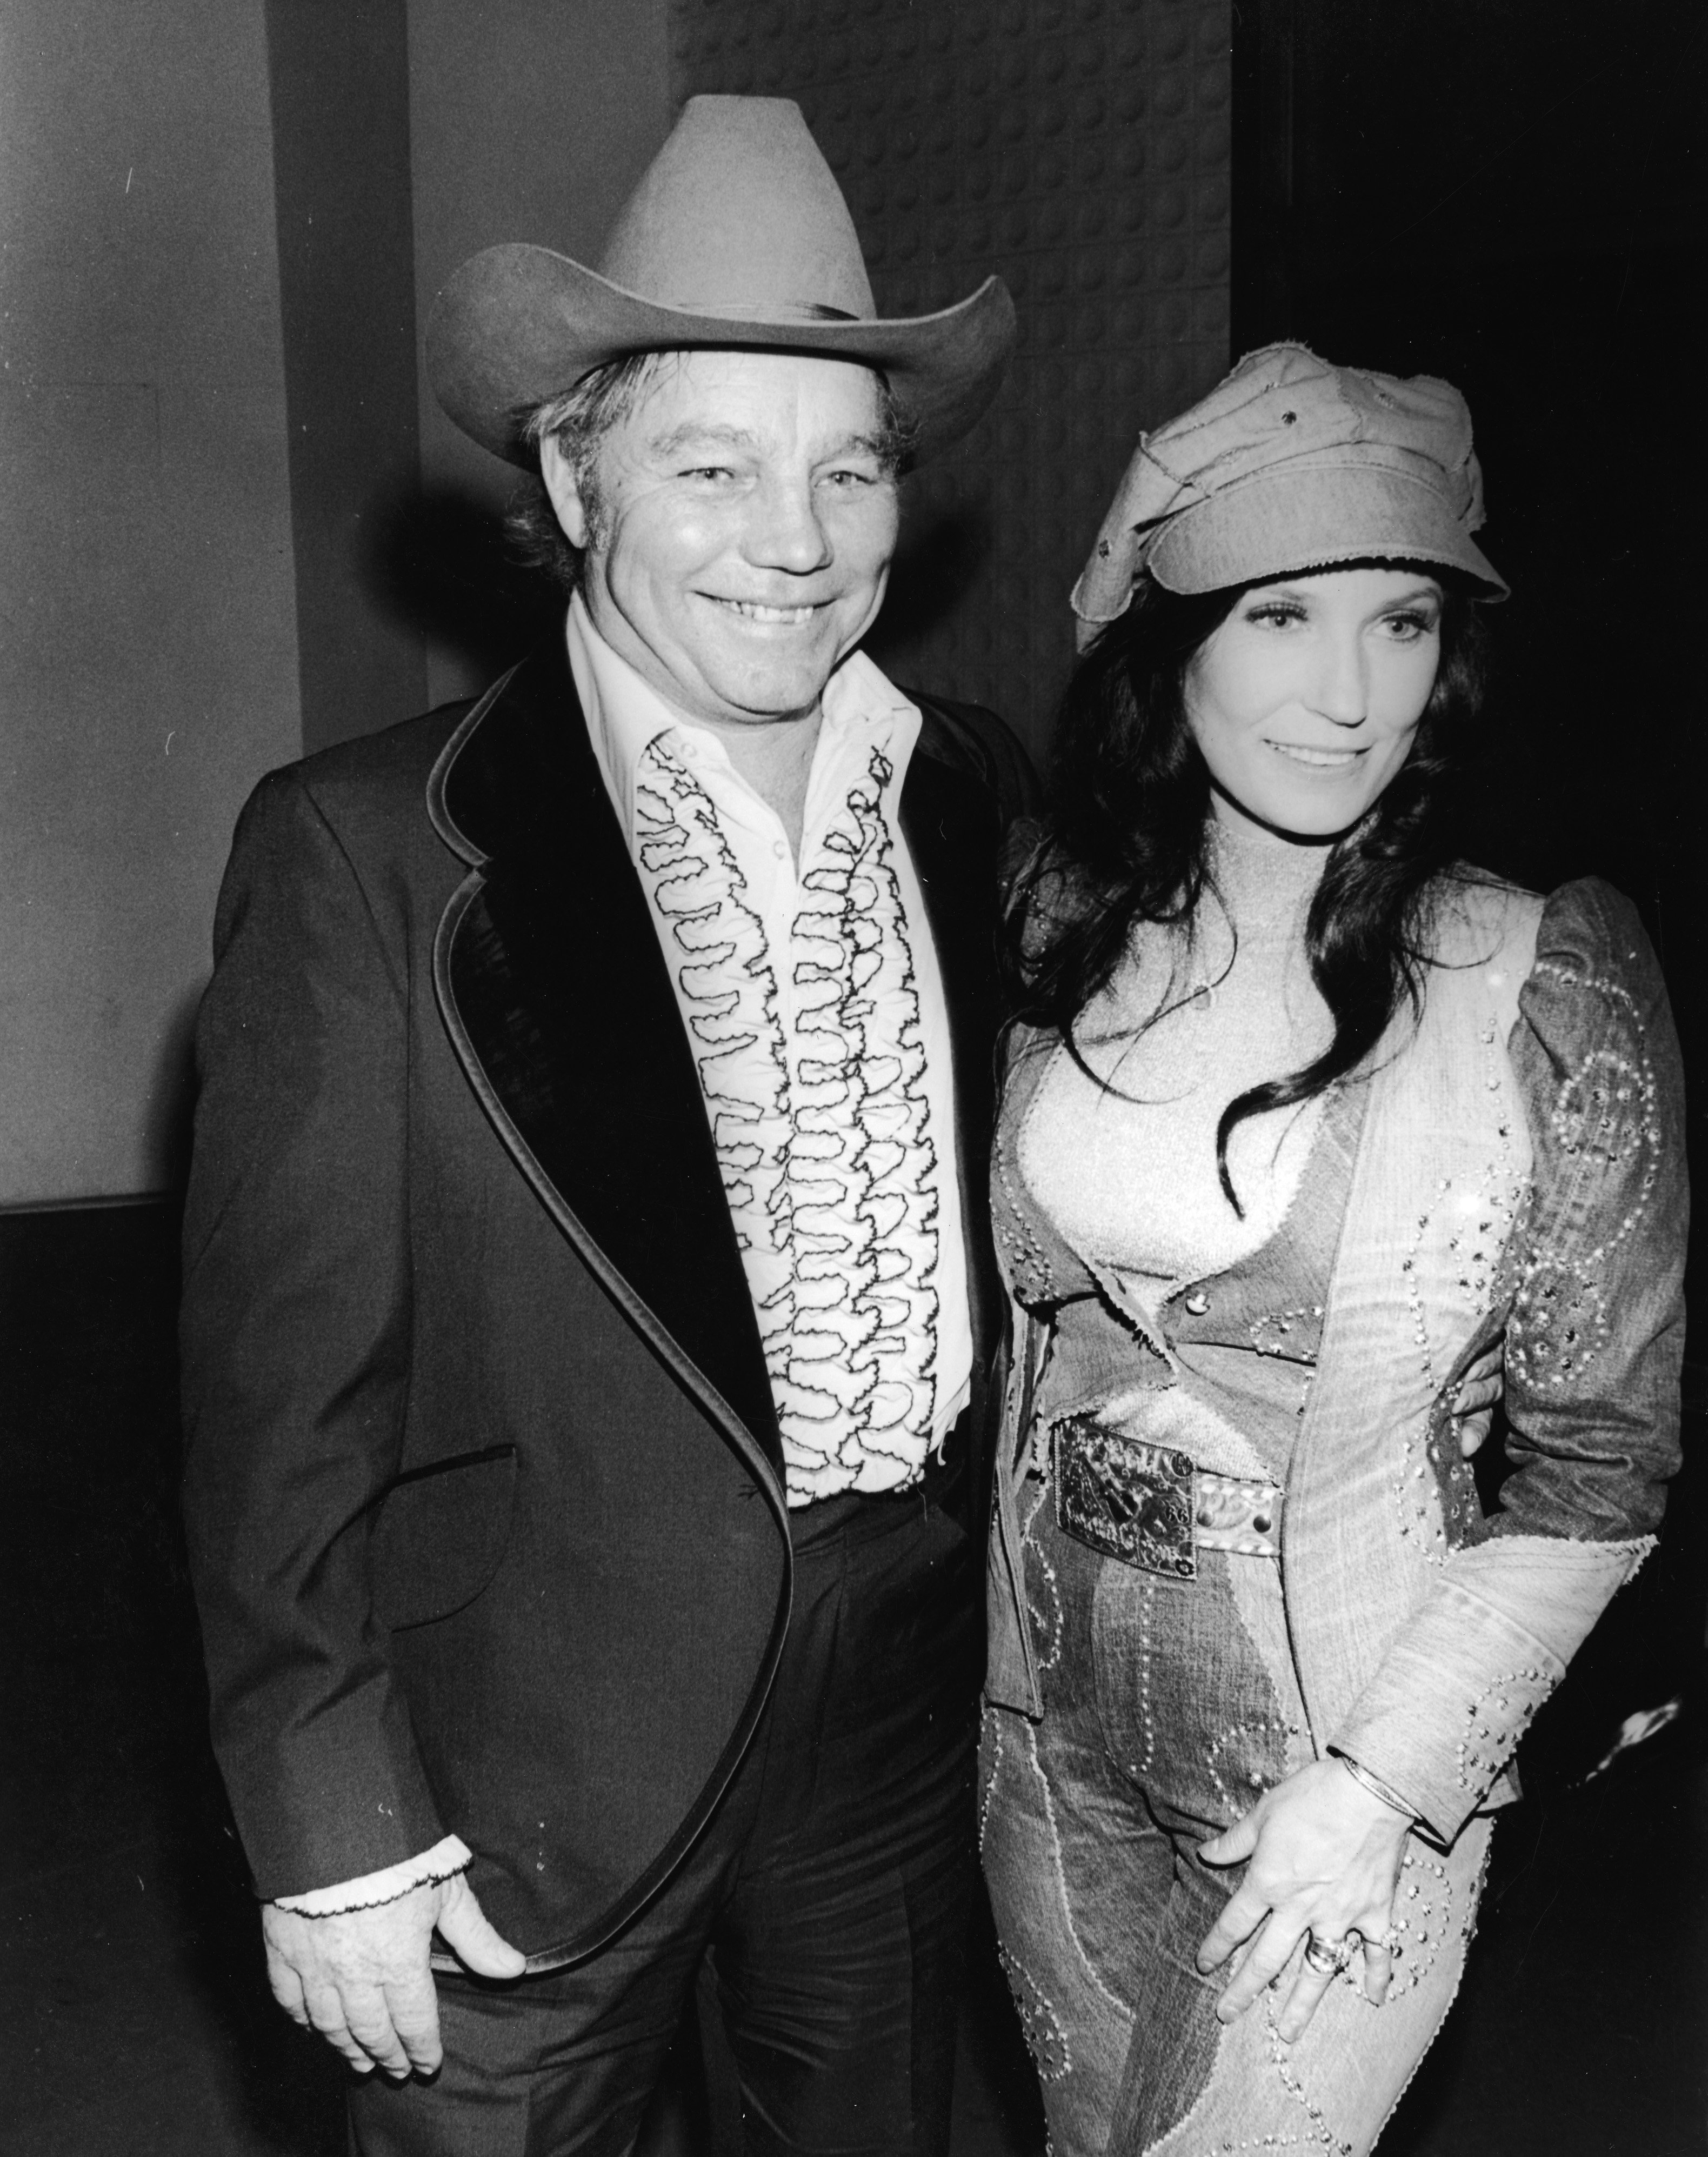 American country music singer and guitarist Loretta Lynn and her husband Oliver Lynn, Jr. (also known as Mooney) (1948 - 1996) at the Country & Western Music Awards, Hollywood, California, February 27, 1975. | Source: Getty Images